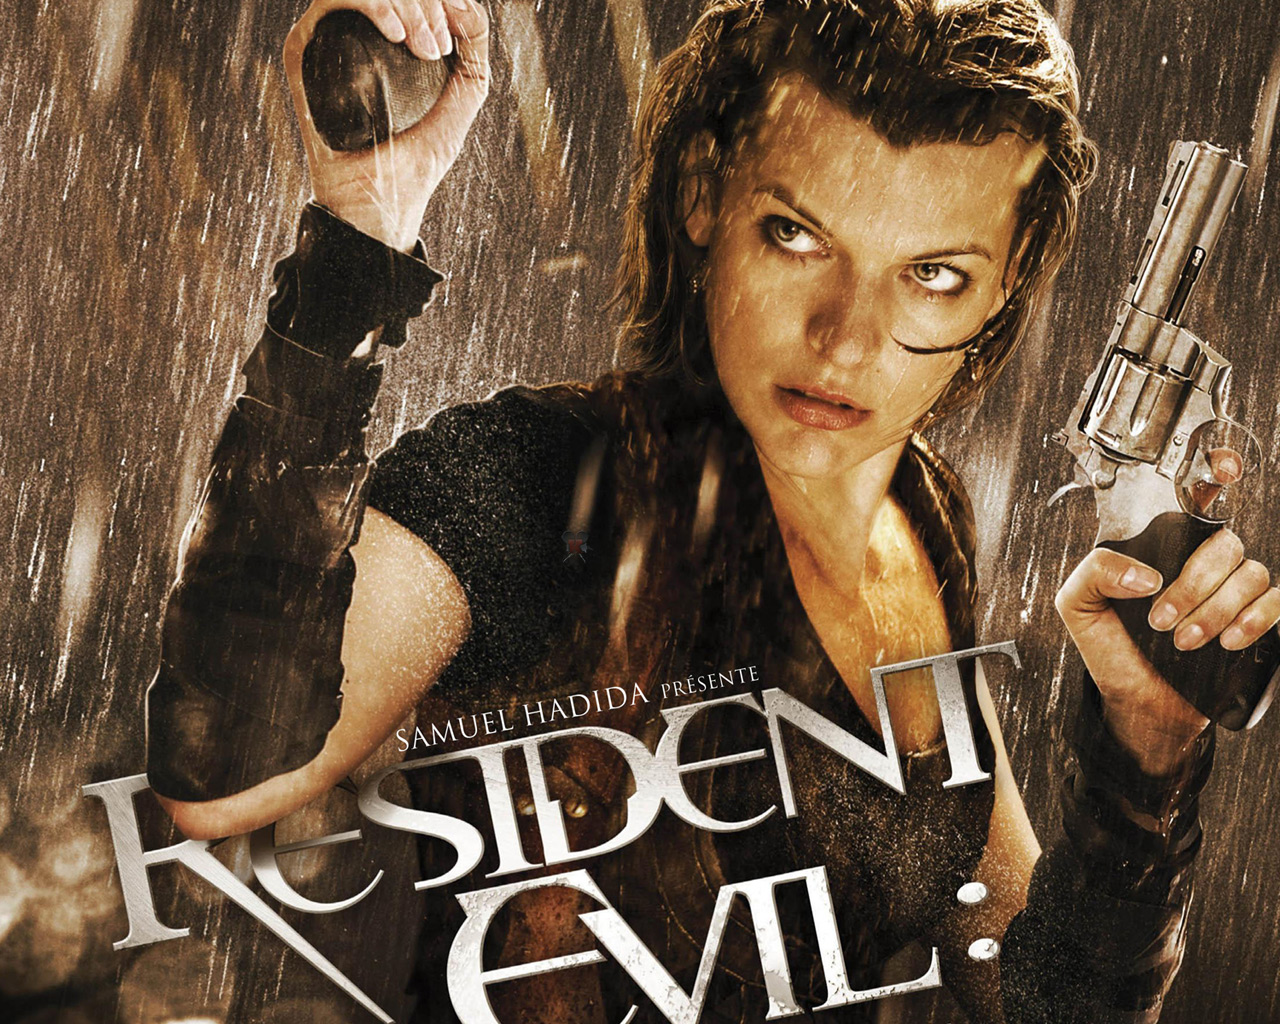 Wallpapers Resident Evil - Movies Resident Evil 4: Afterlife Milla